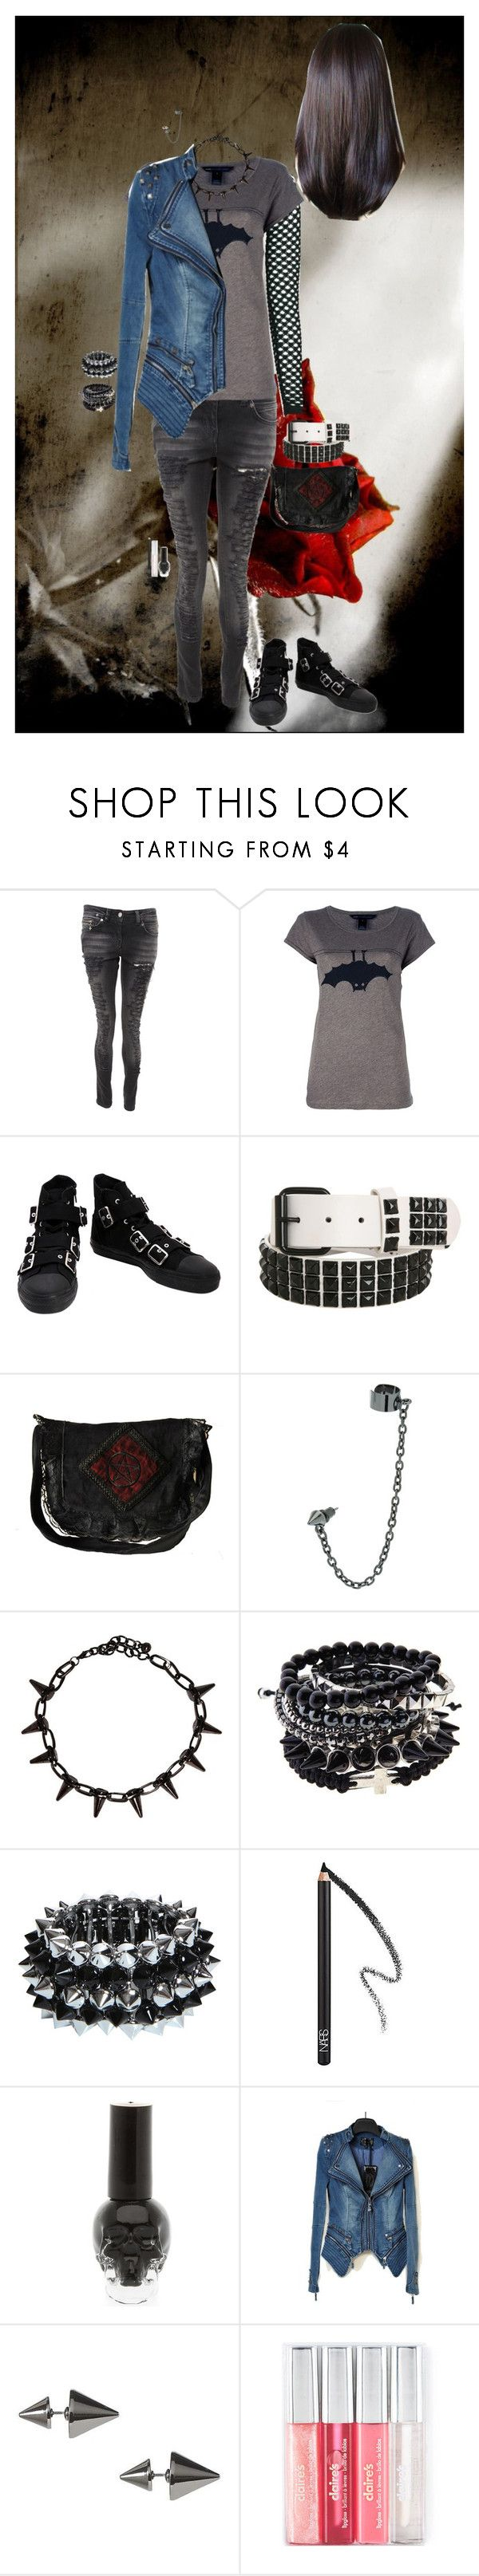 """""""Look 2-27"""" by candy-coated-doom ❤ liked on Polyvore featuring Crafted, Marc by Marc Jacobs, Hot Topic, Topman, NARS Cosmetics, Banana Republic, emo and HIWIDIHS"""